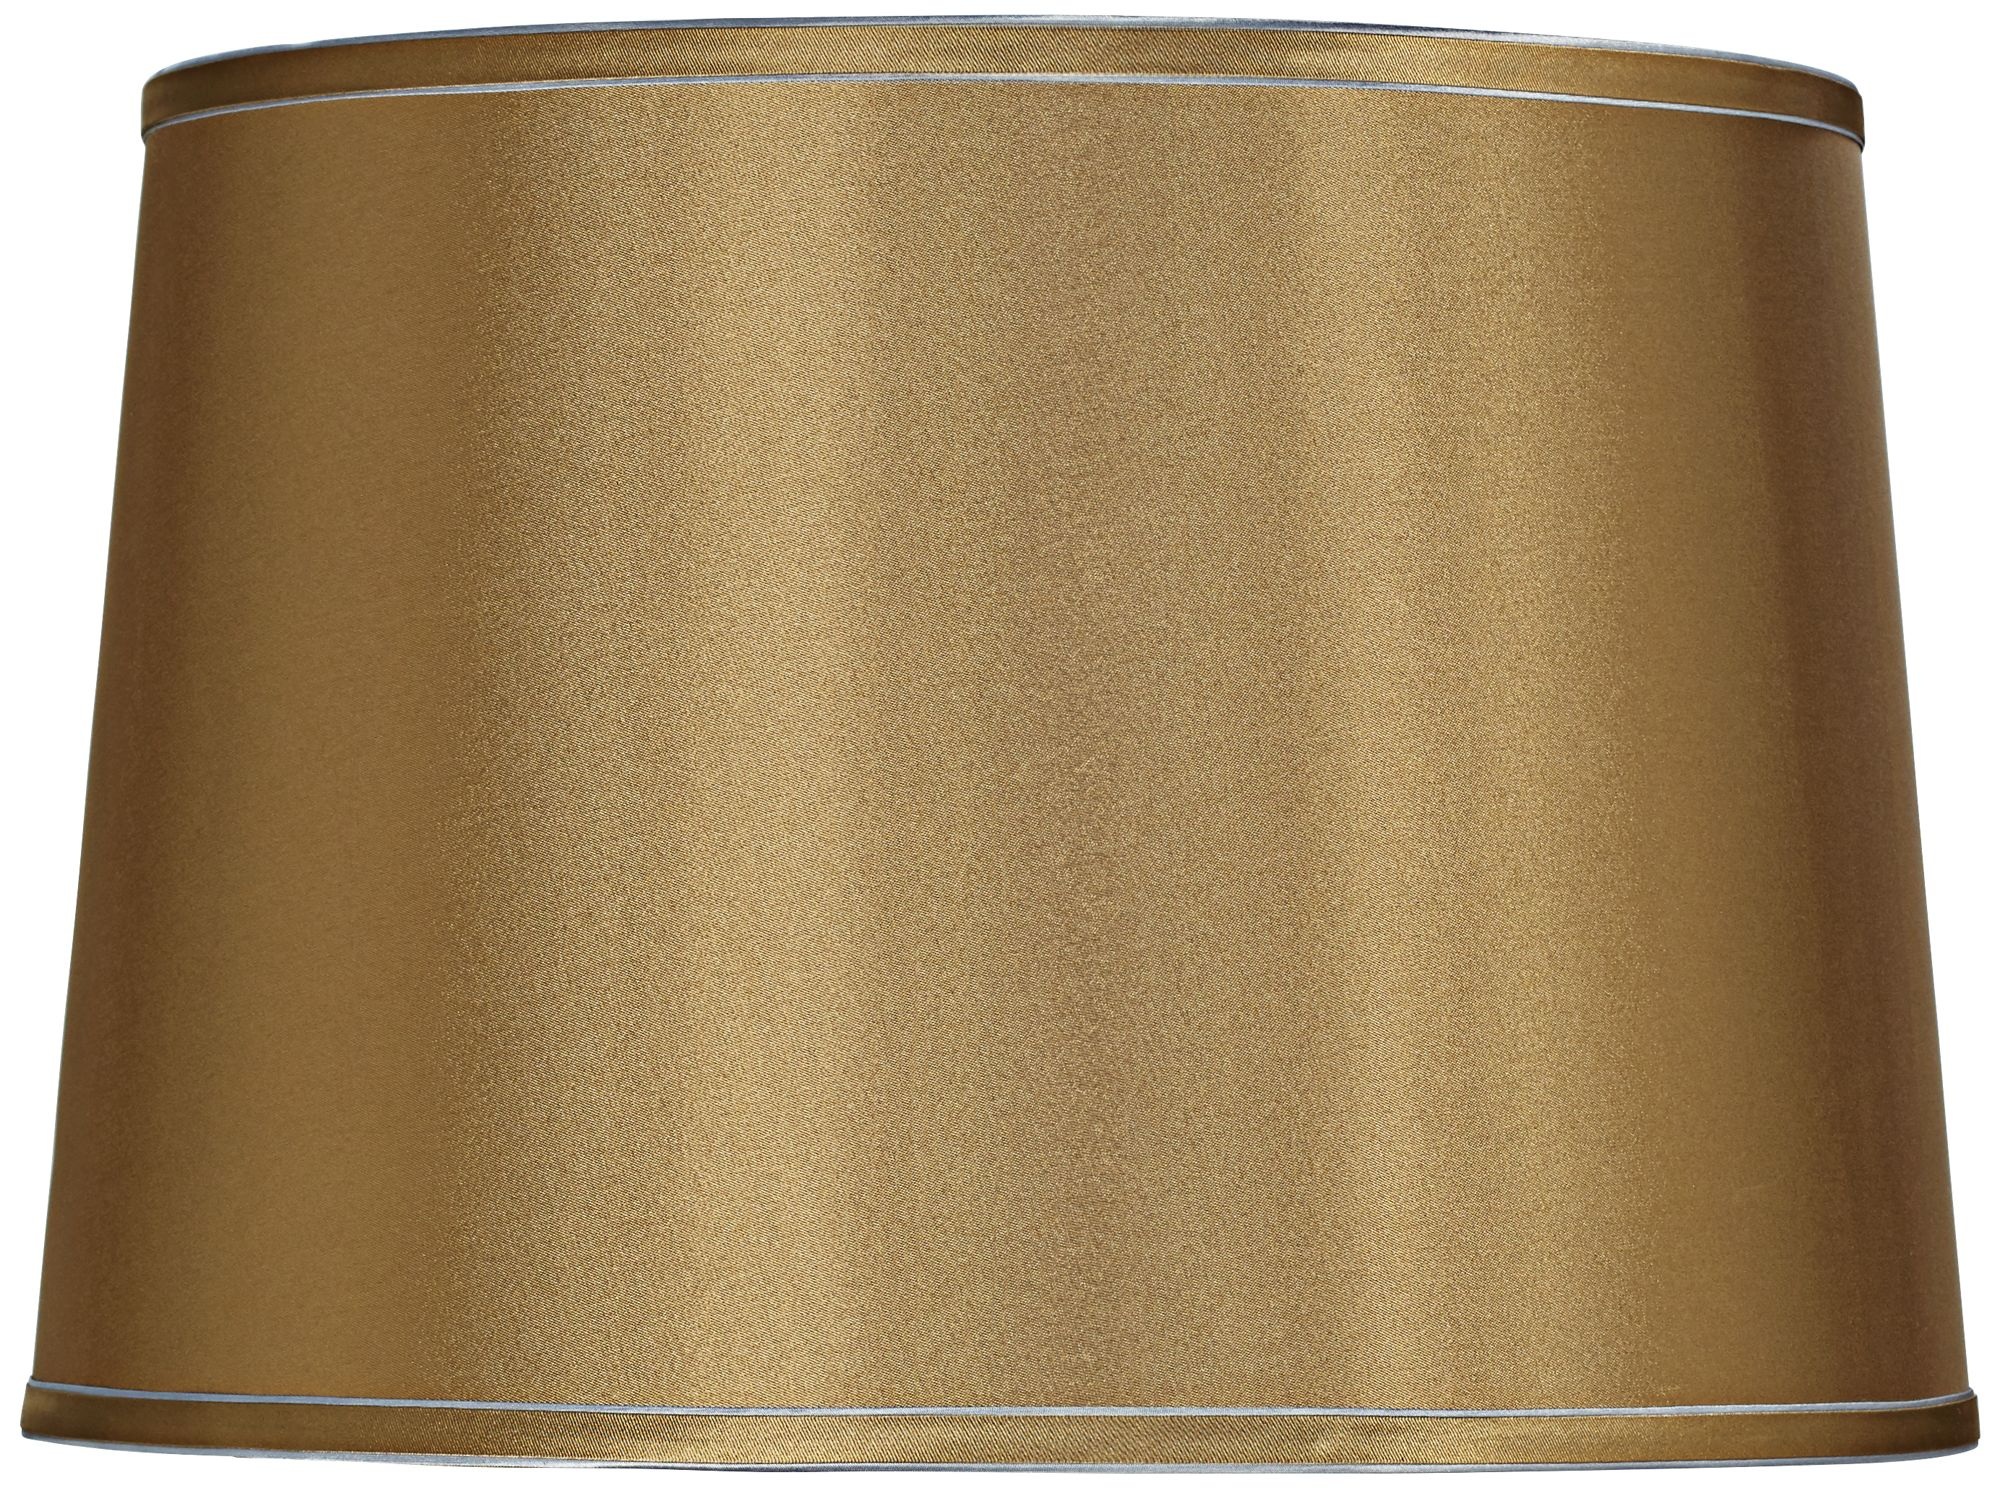 Wonderful Sydnee Gold With Silver Trim Drum Shade 14x16x11 (Spider)   #8G341 | Lamps  Plus